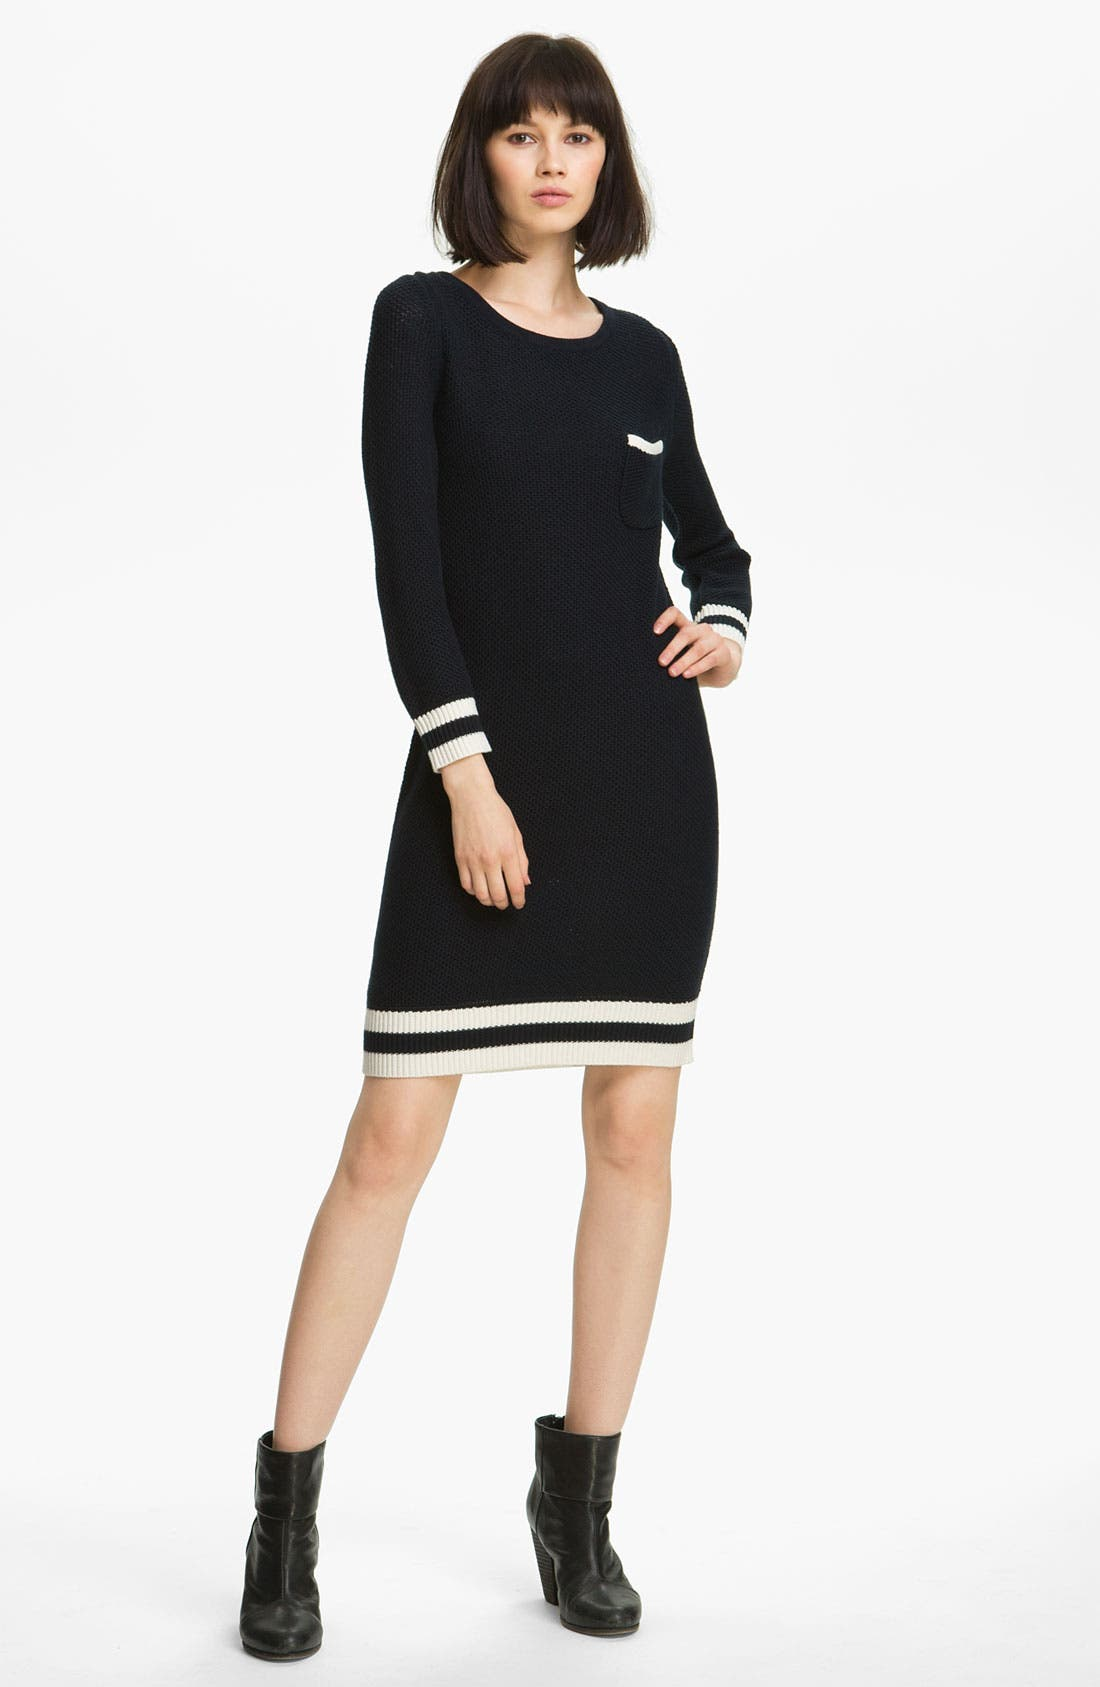 Main Image - rag & bone/KNIT 'Allison' Contrast Trim Dress